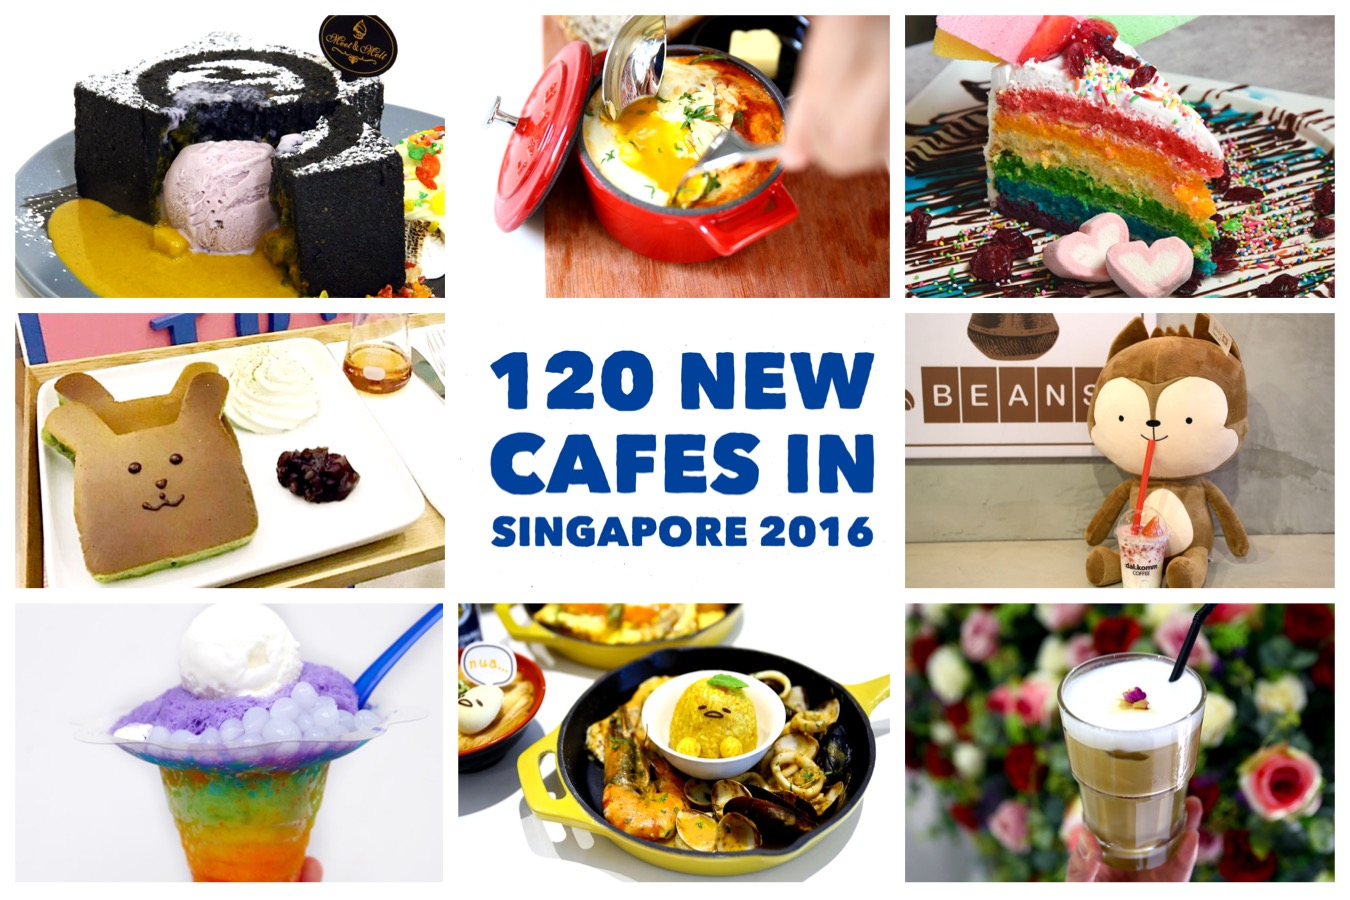 120 NEW Cafes in Singapore 2016 - The Ultimate Singapore Cafe Hopping Guide